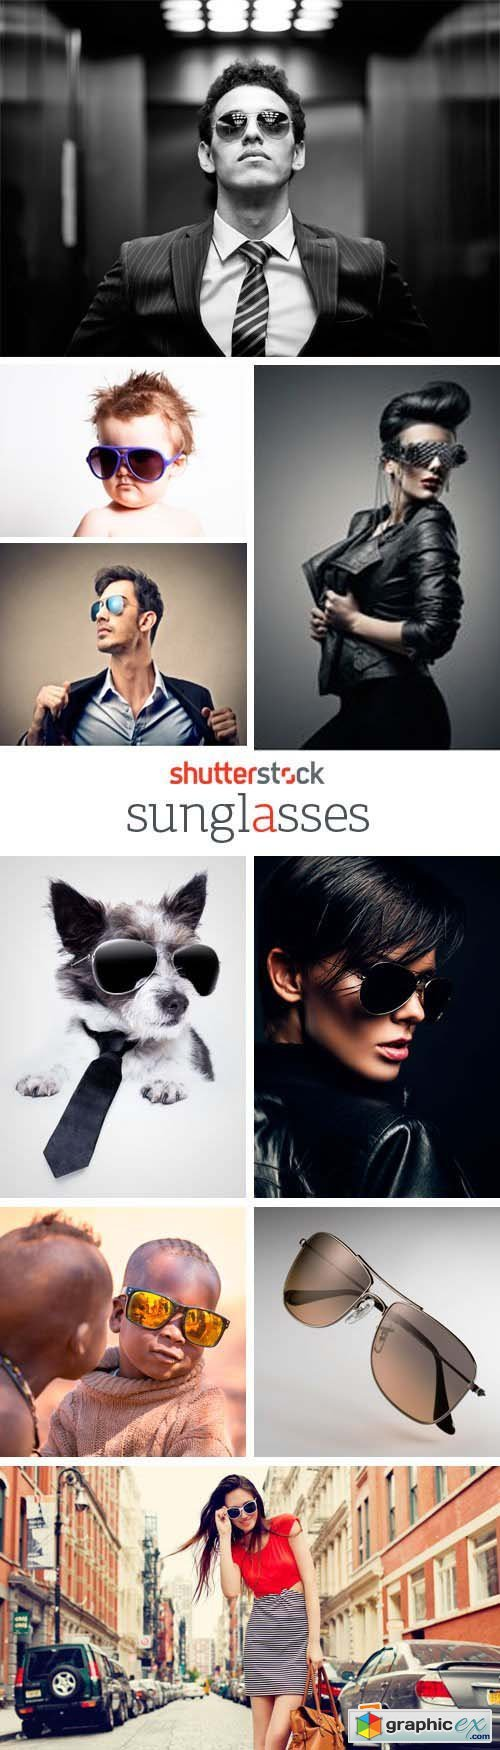 Amazing SS - Sunglasses, 25xJPGs